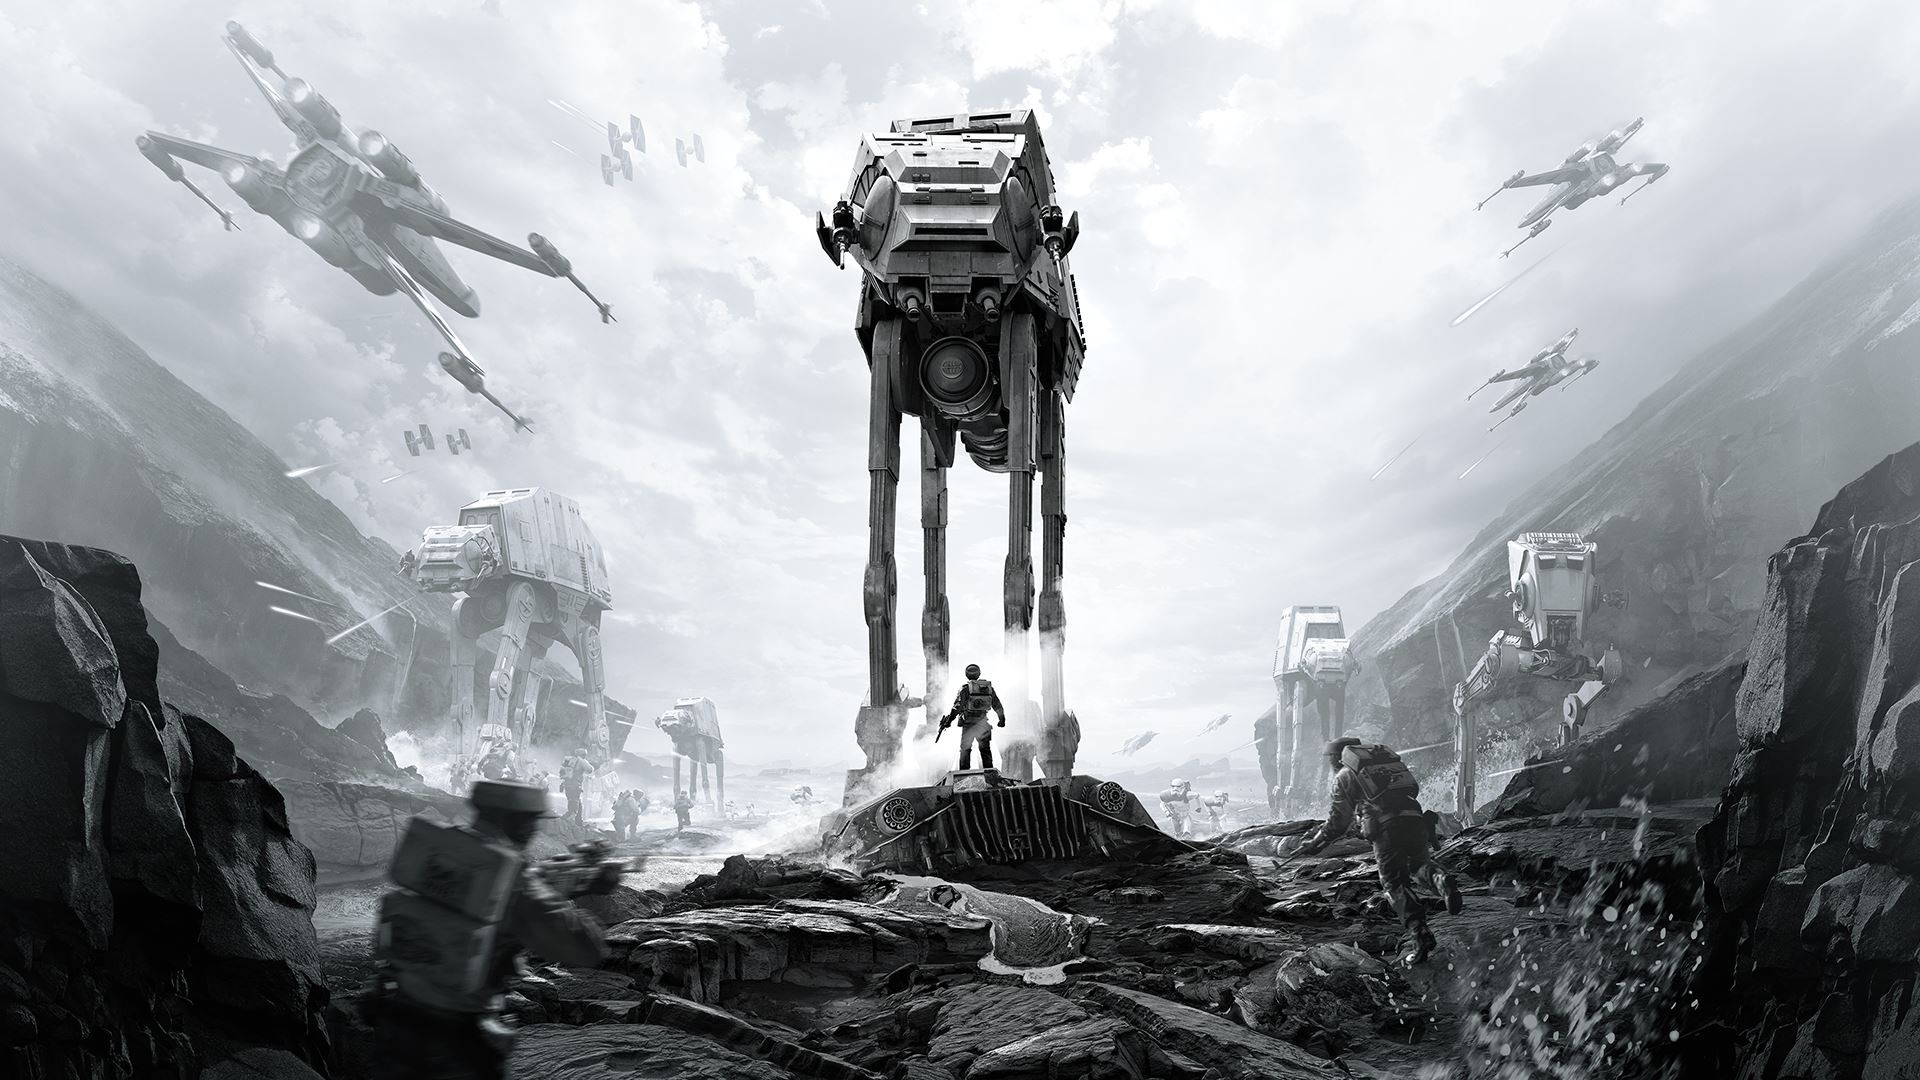 Star Wars Battlefront Wallpaper Download Free Stunning Full Hd